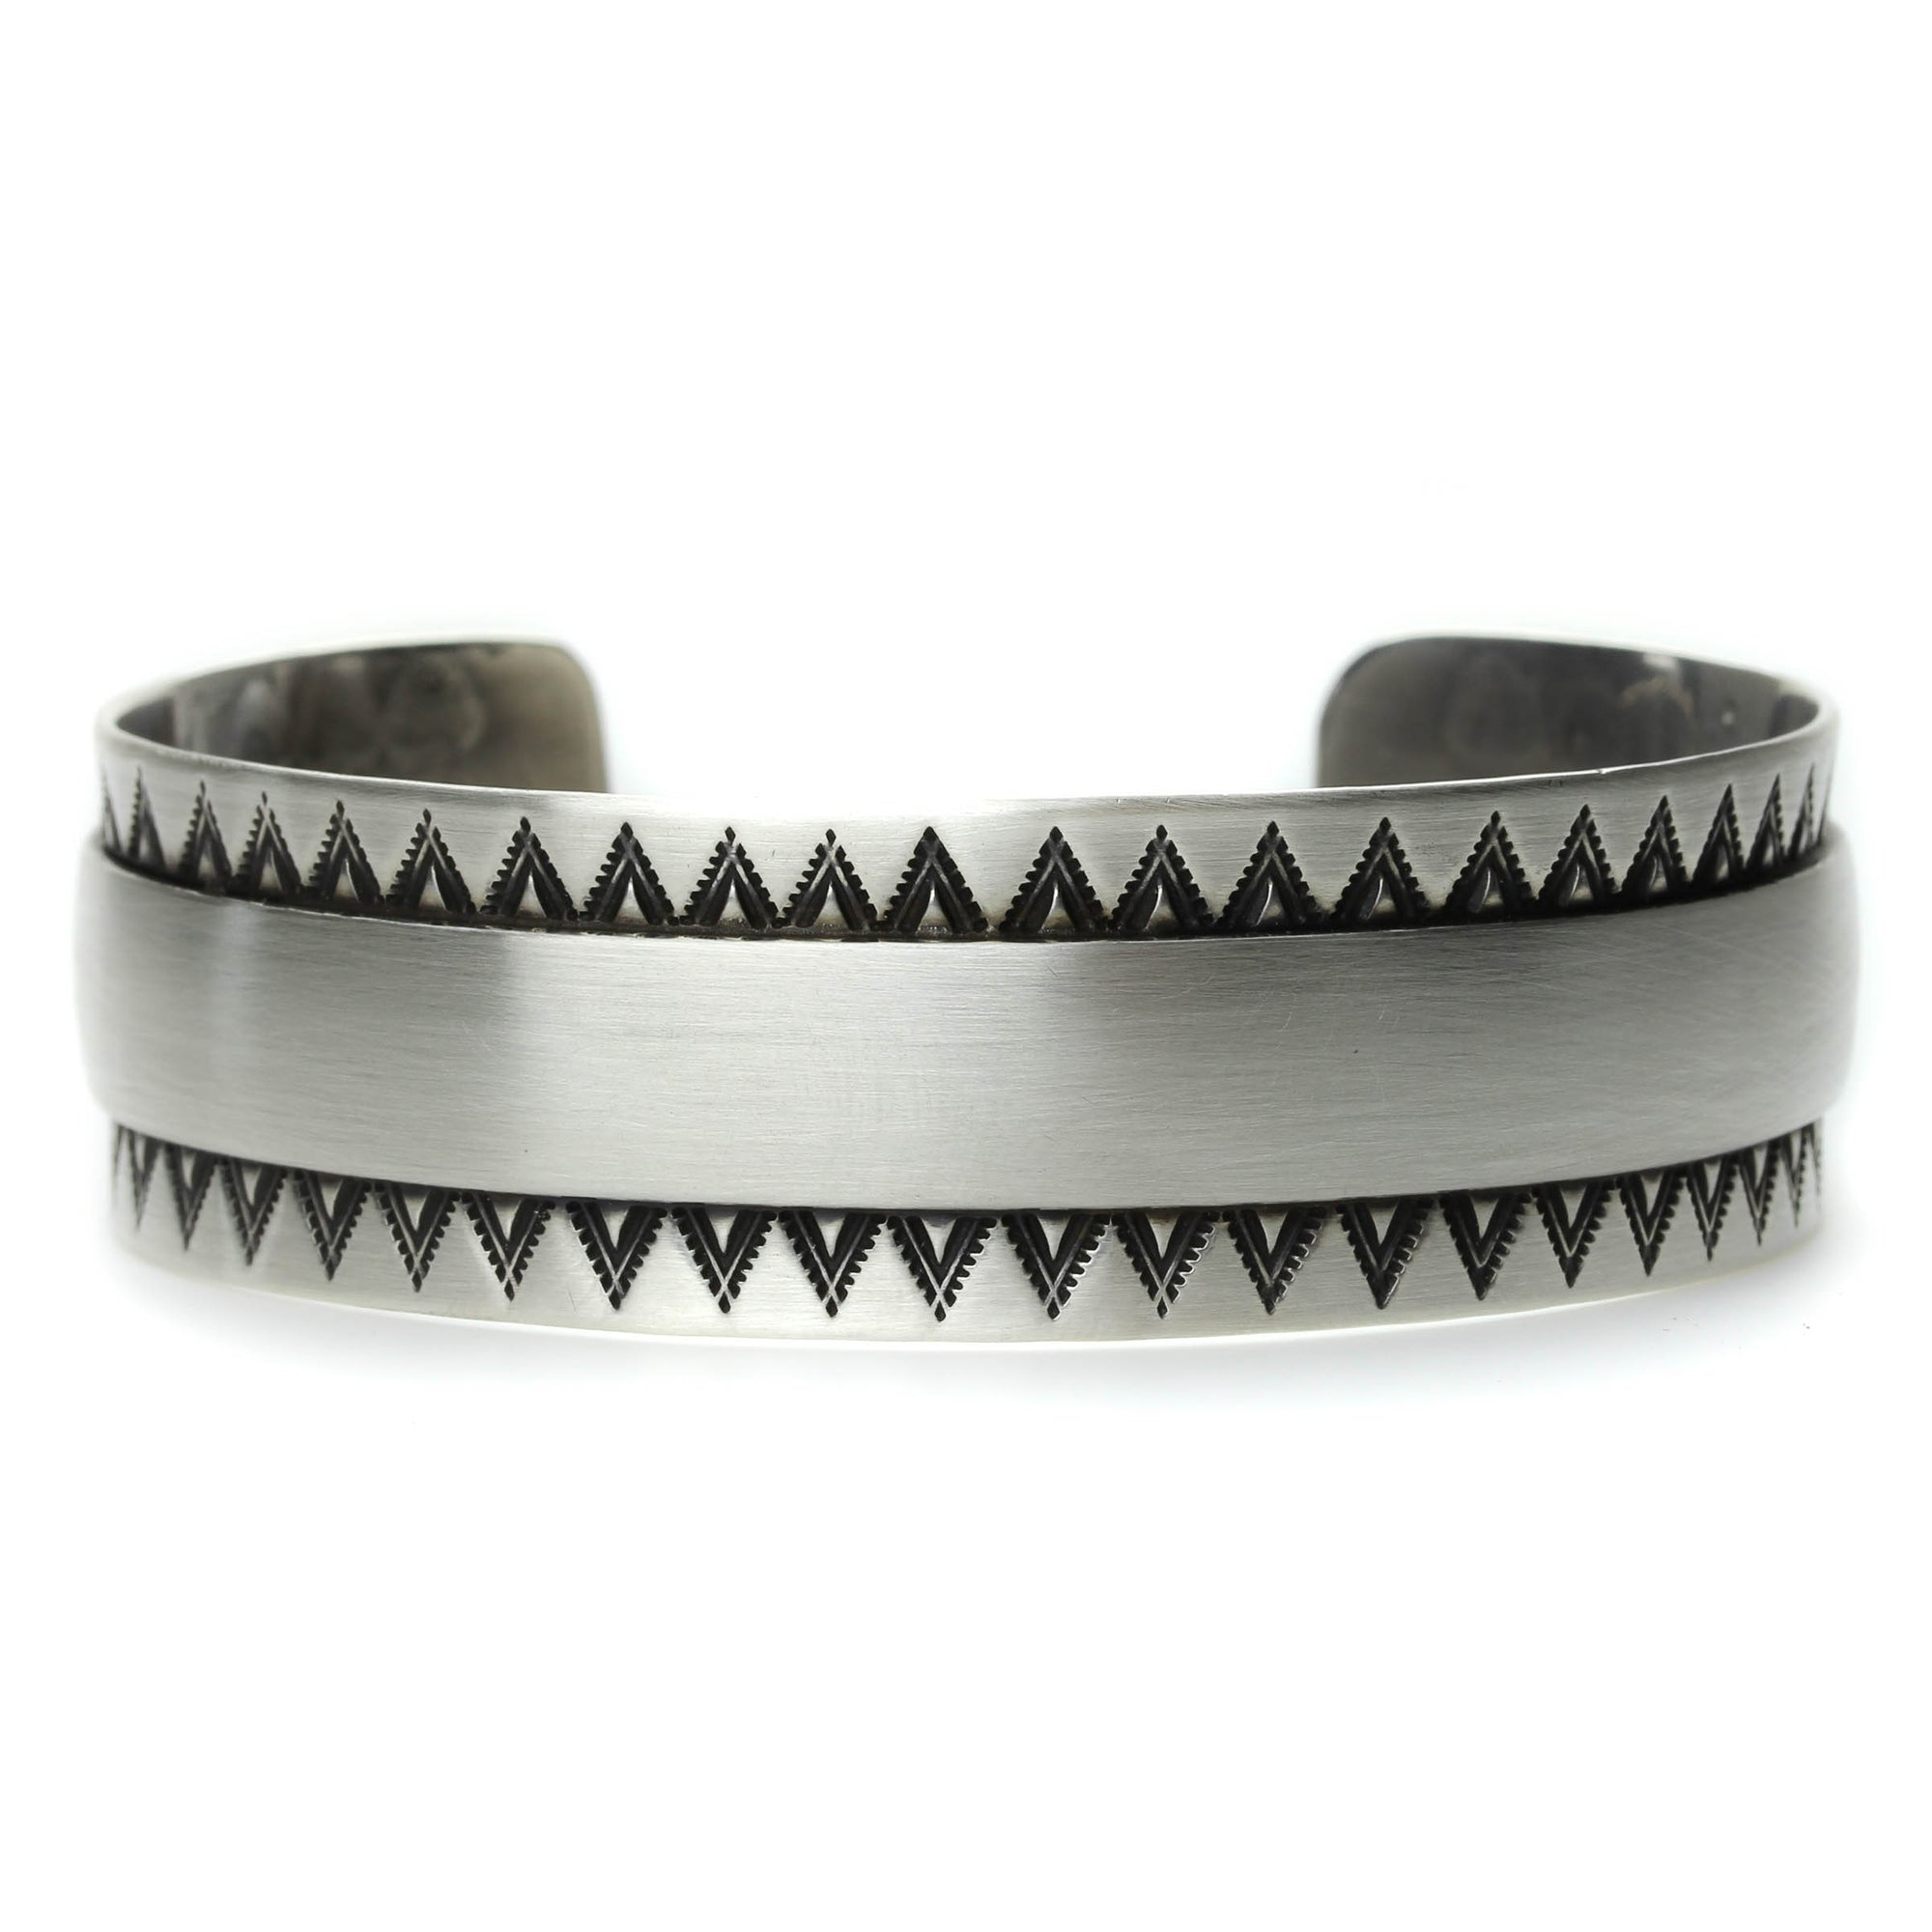 Mountain Range Cuff